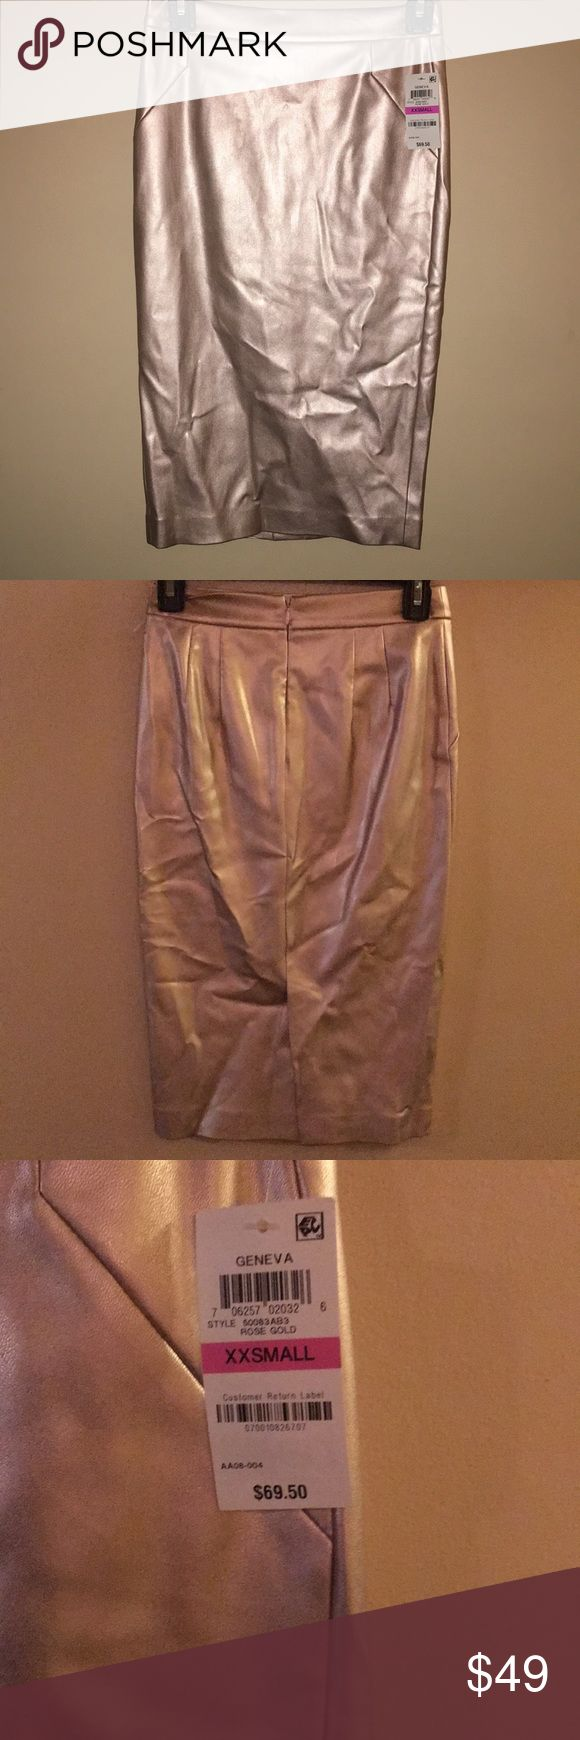 """Bar lll- faux leather rose gold pencil skirt NWT Rose gold faux leather pencil skirt. NWT. Waist 13"""" laid flat length 24"""" Bar III Skirts Pencil"""